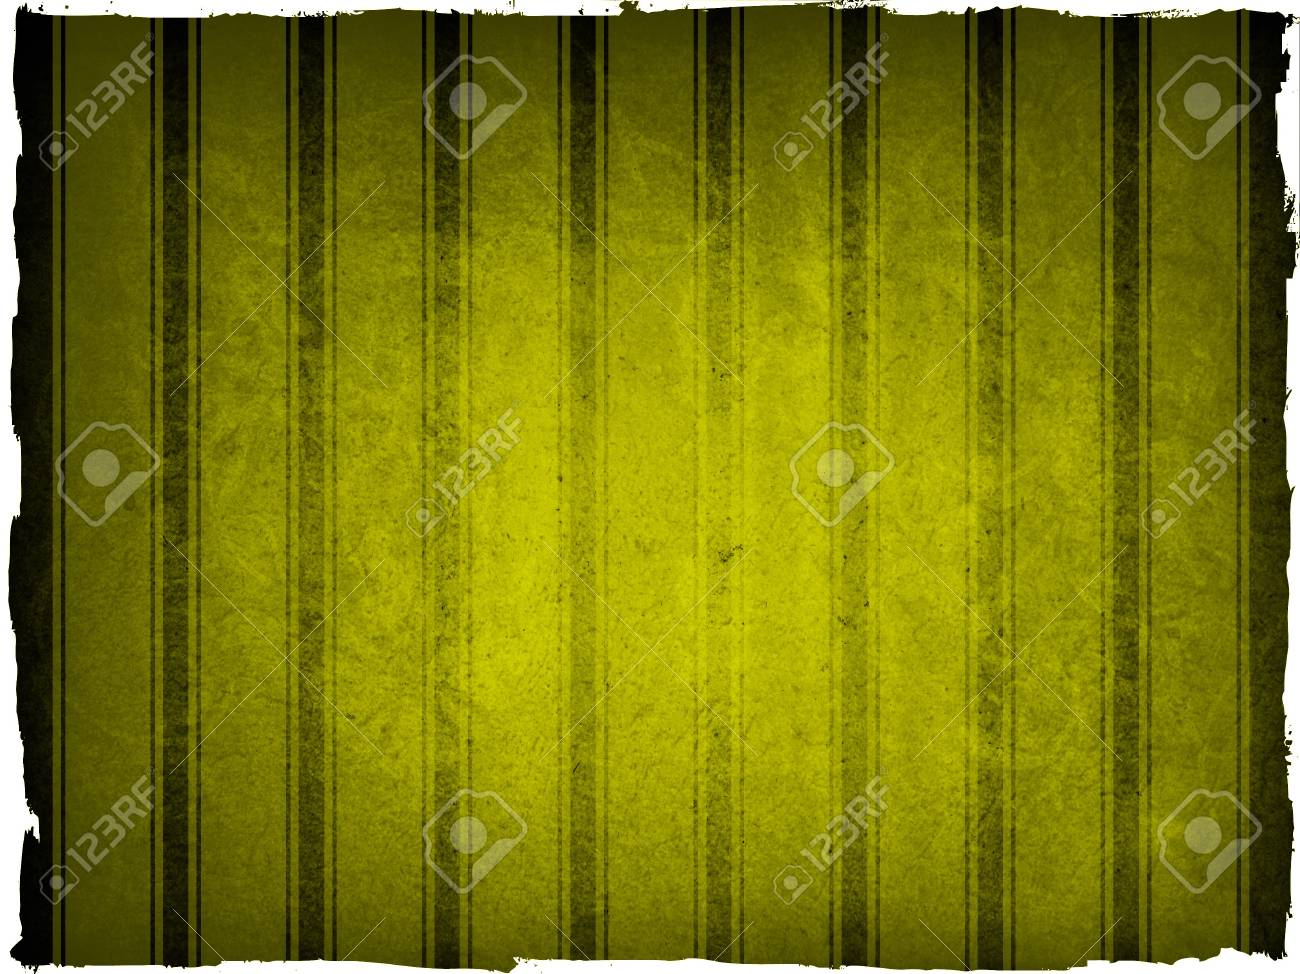 large grunge textures and backgrounds - perfect background with space for text or image Stock Photo - 7399445